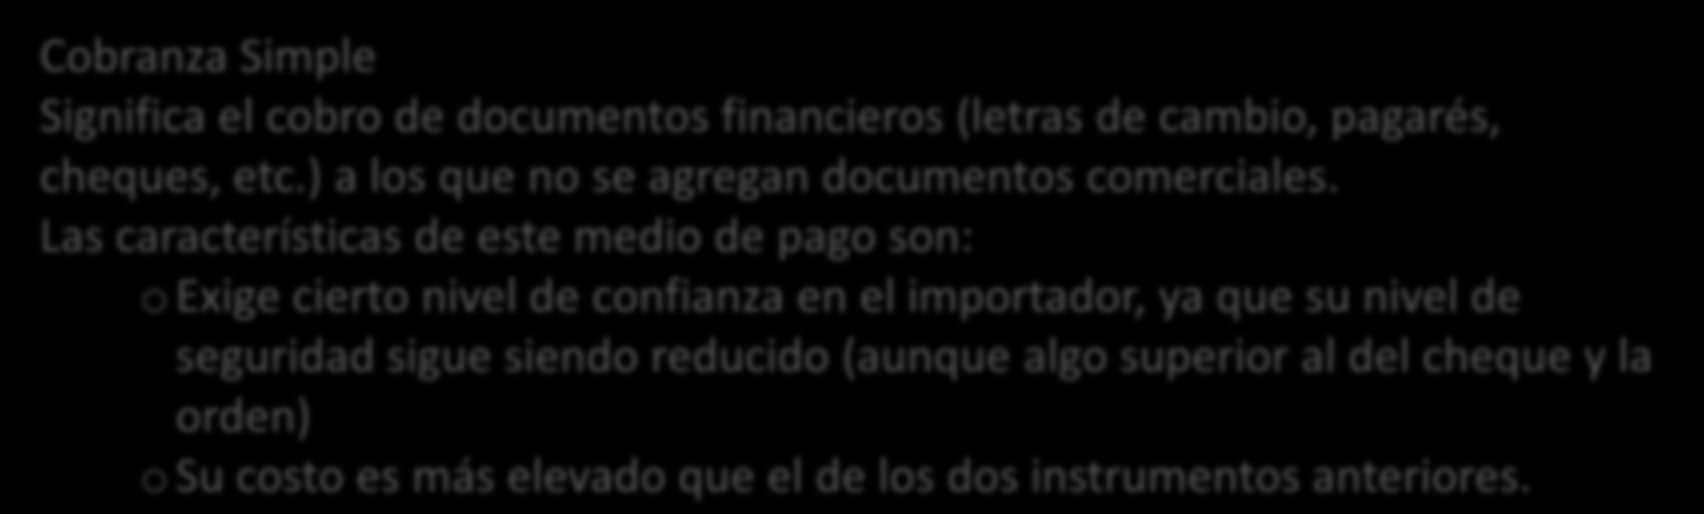 COBRANZAS Cobranza Simple Significa el cobro de documentos financieros (letras de cambio, pagarés,